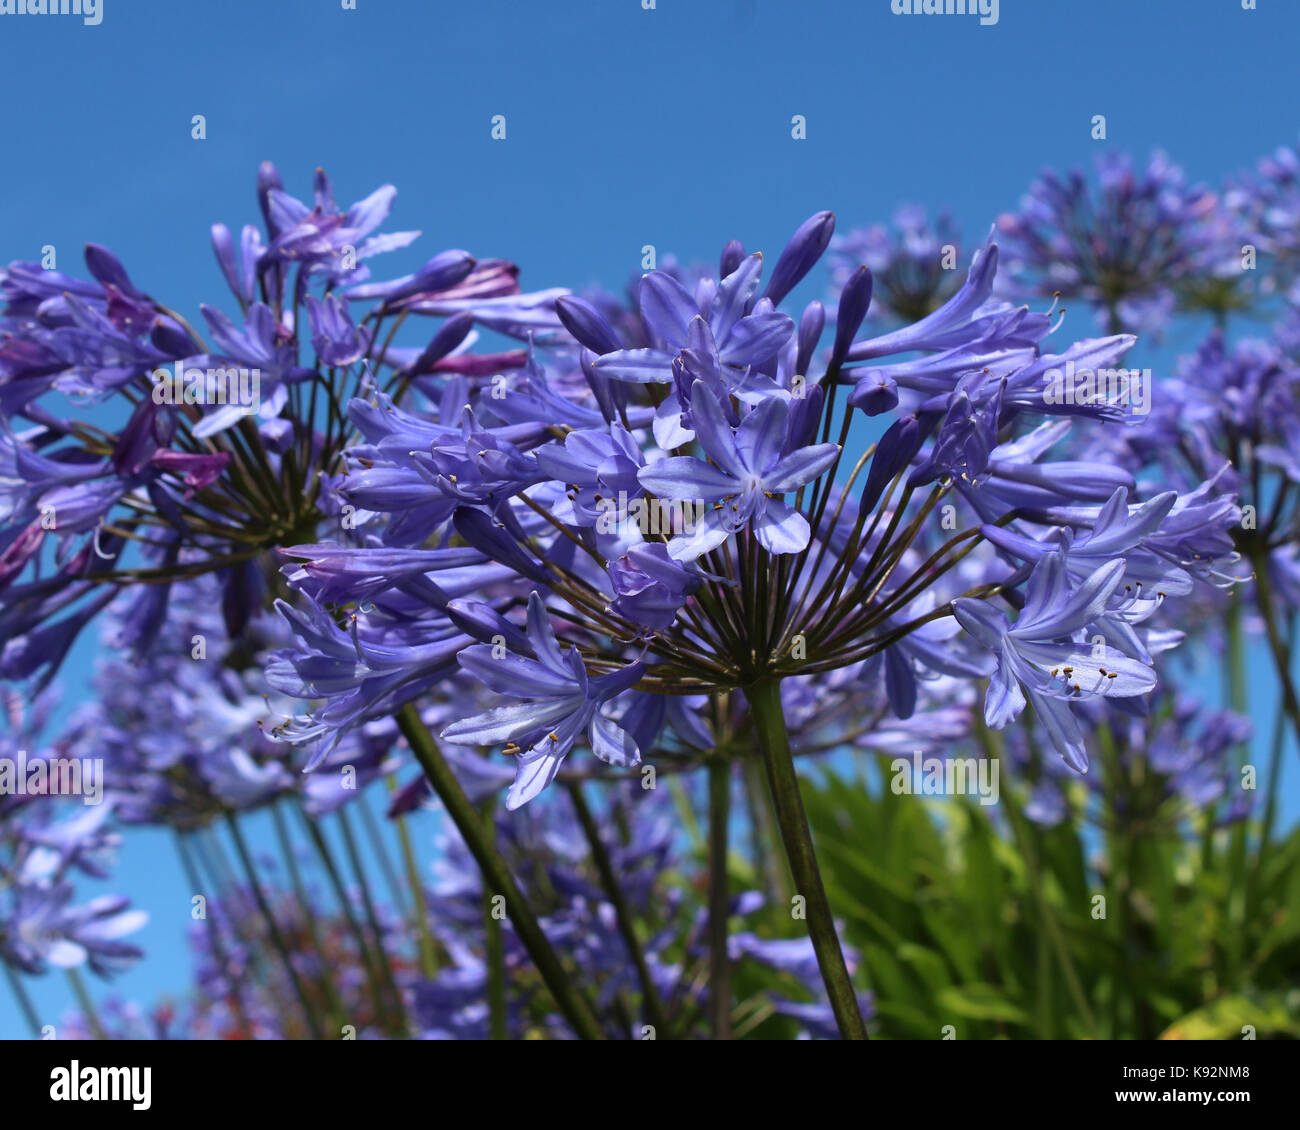 The Bright Blue Flowers Of Agapanthus Also Known As African Lily Or